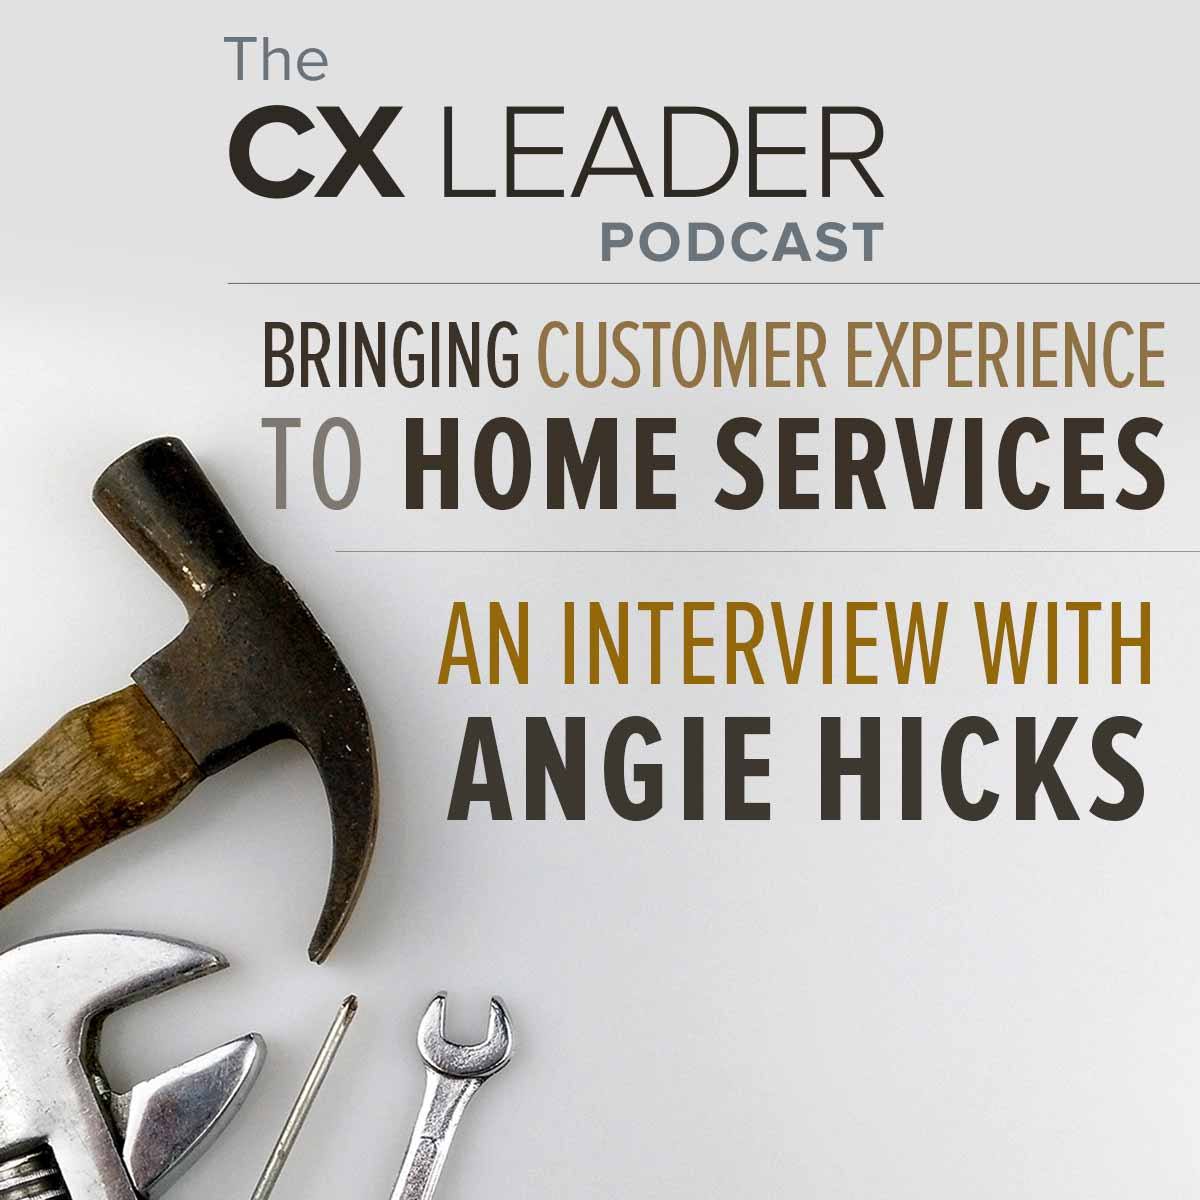 Angie's List: Bringing Customer Experience to Home Services